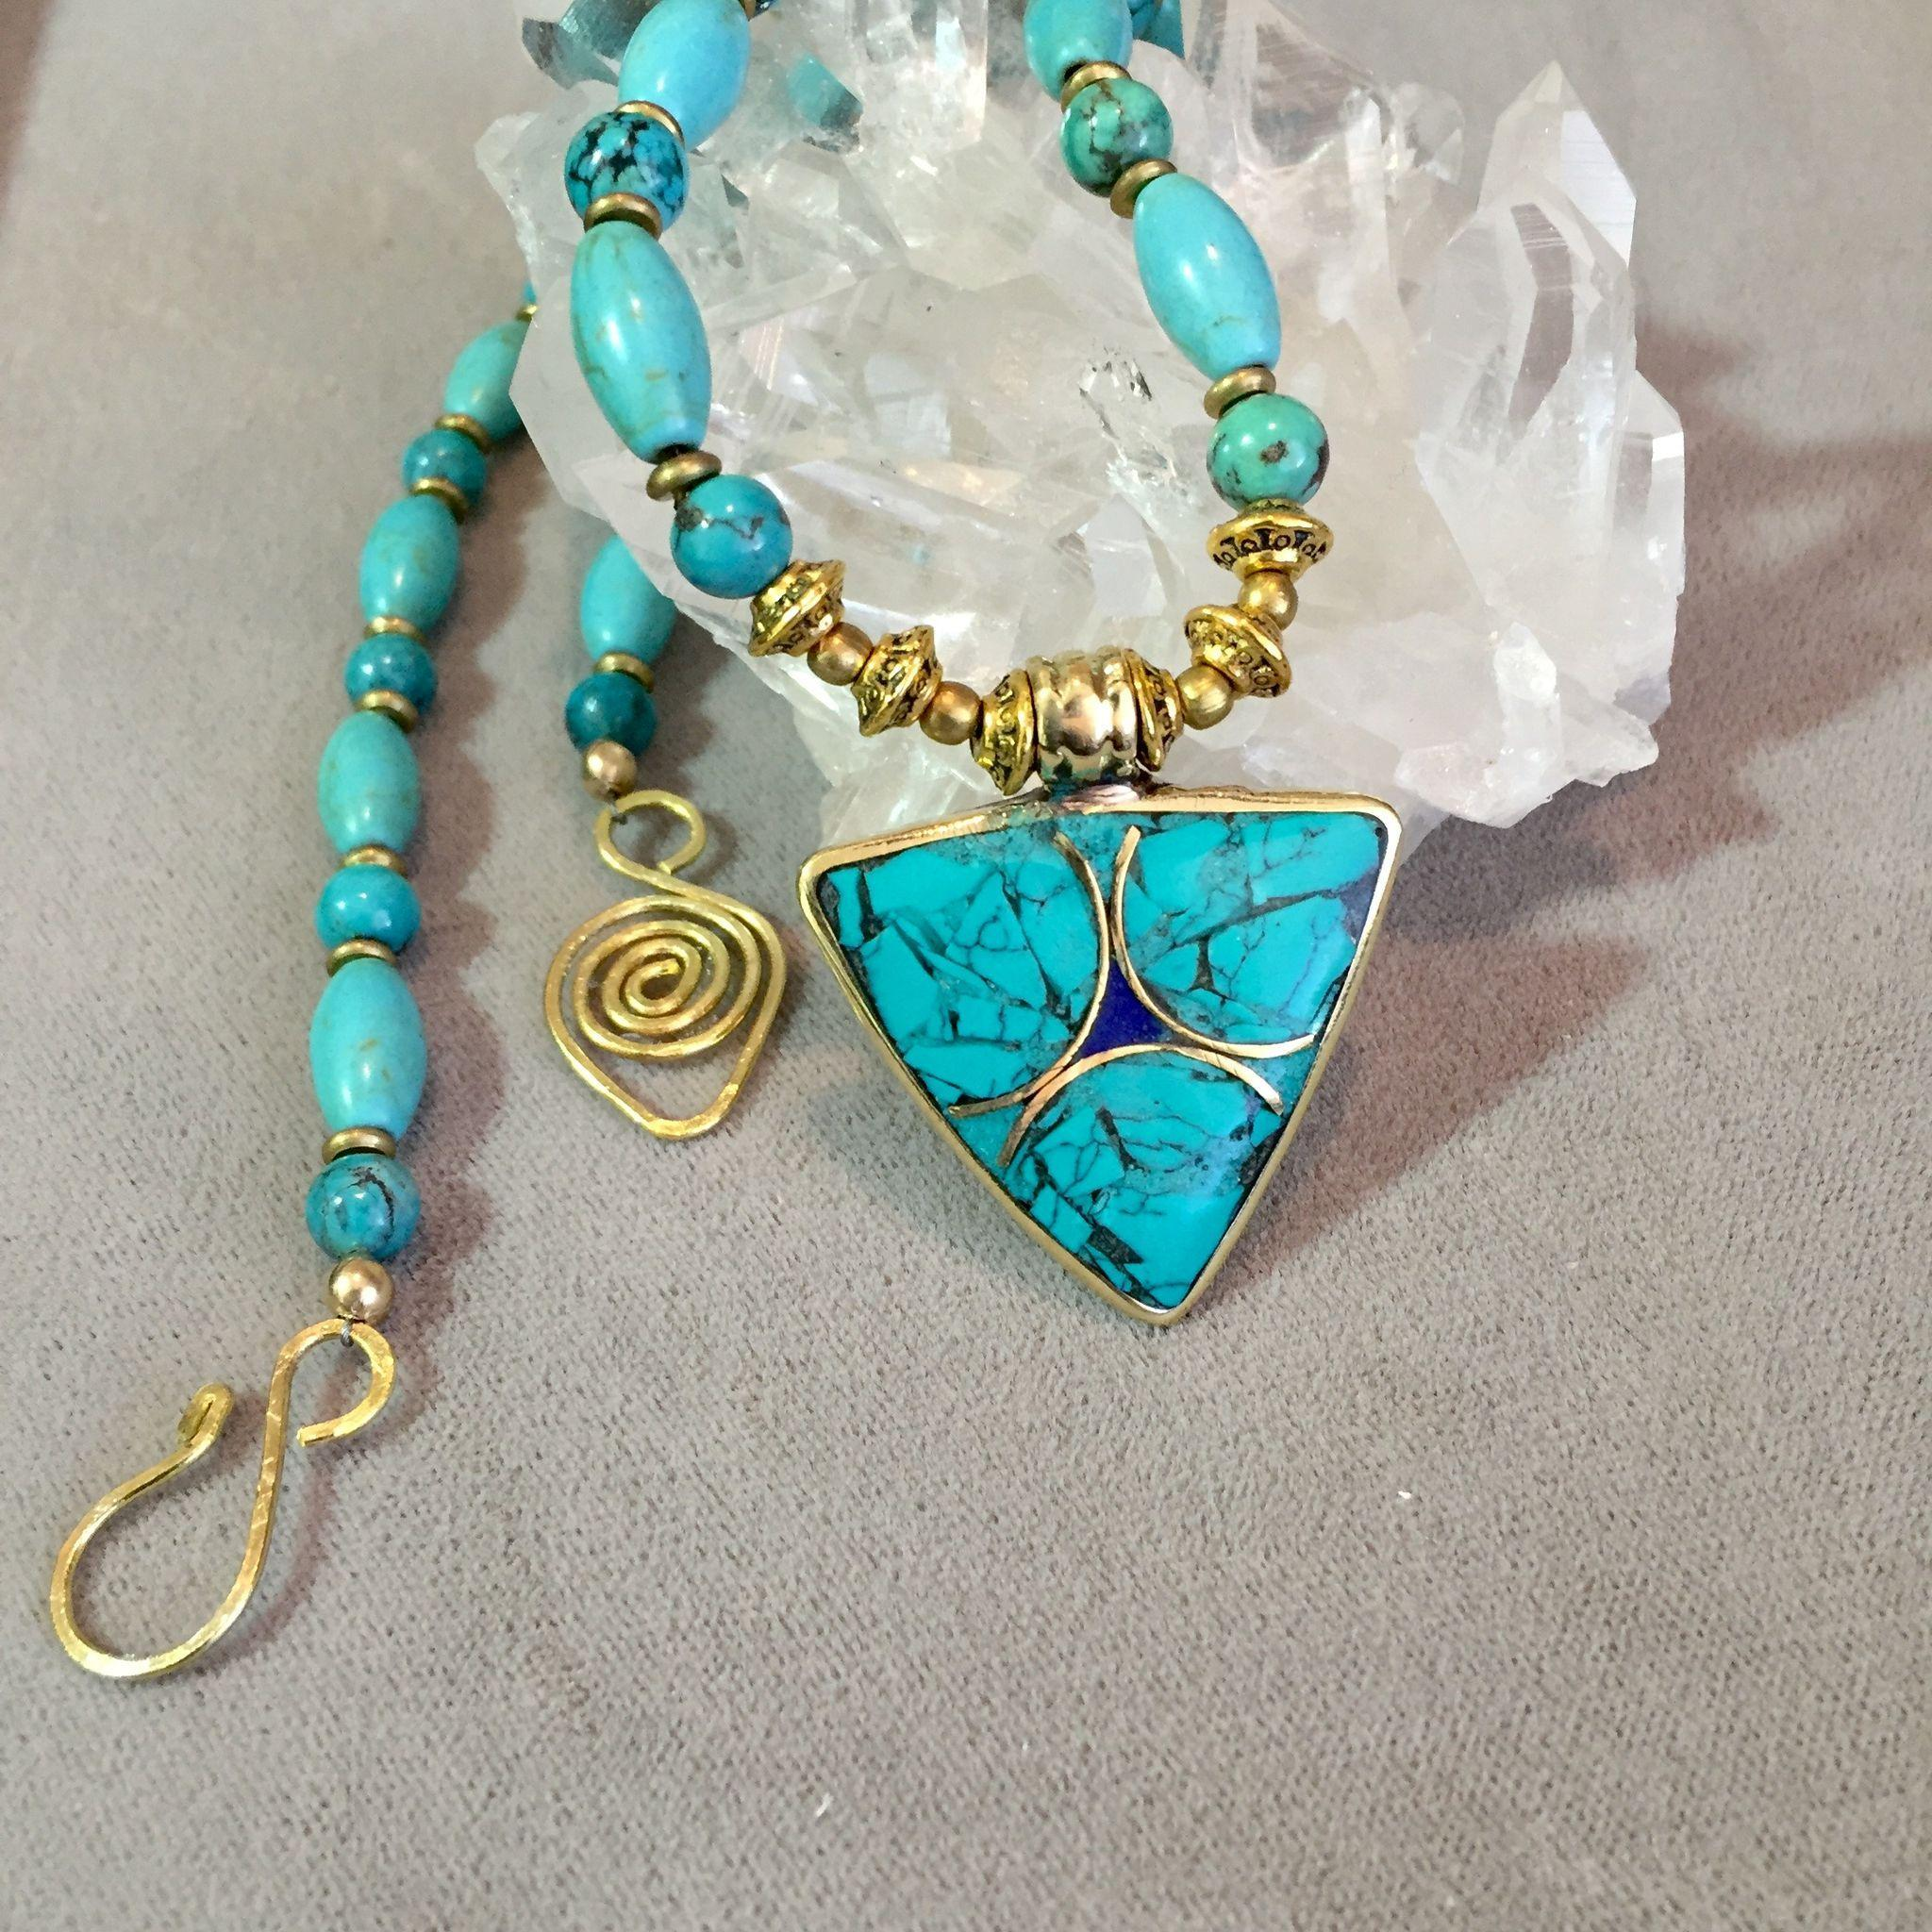 Delicate Necklace of Magnesite, Turquoise & Brass, 20 Inches